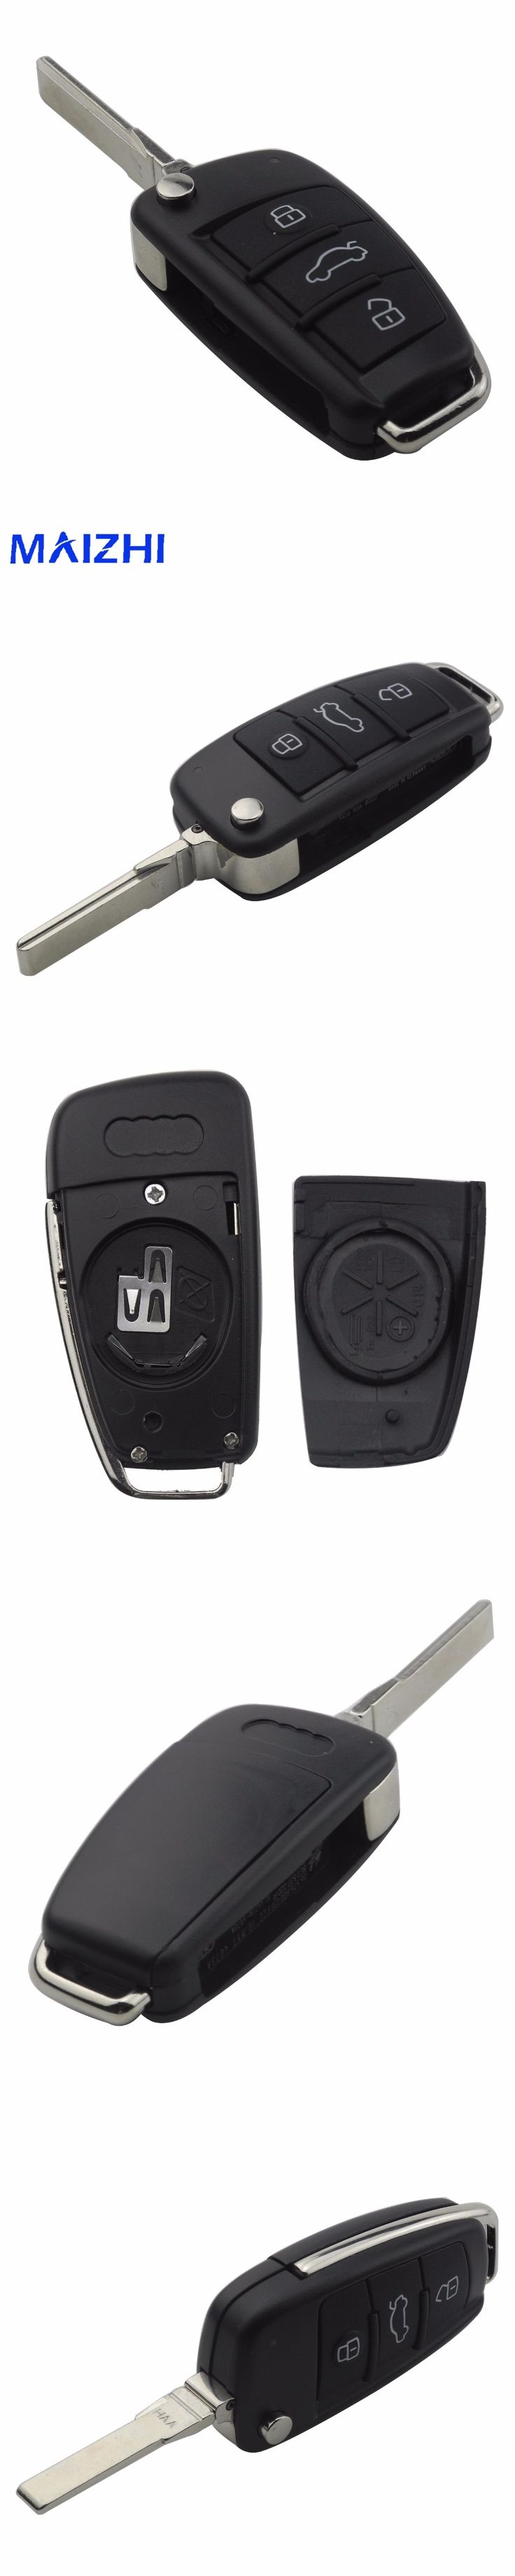 maizhi 3 Buttons Folding Flip Car Key Remote Case Shell For Audi A2 A3 A4 A6 A6L A8 TT Car Cover Fob